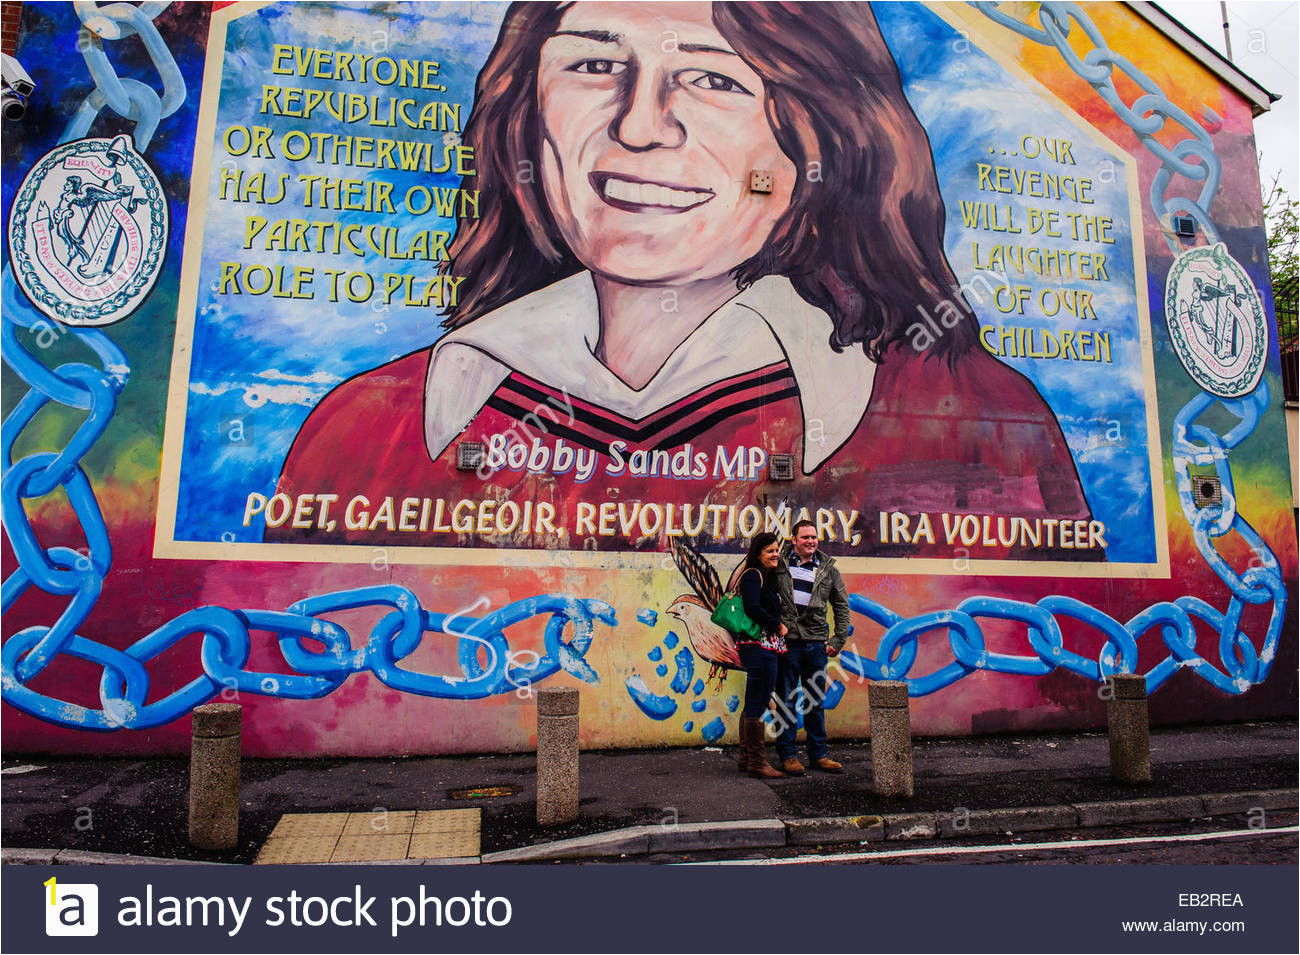 a couple poses in front of the bobby sands mural on the gable wall EB2REA